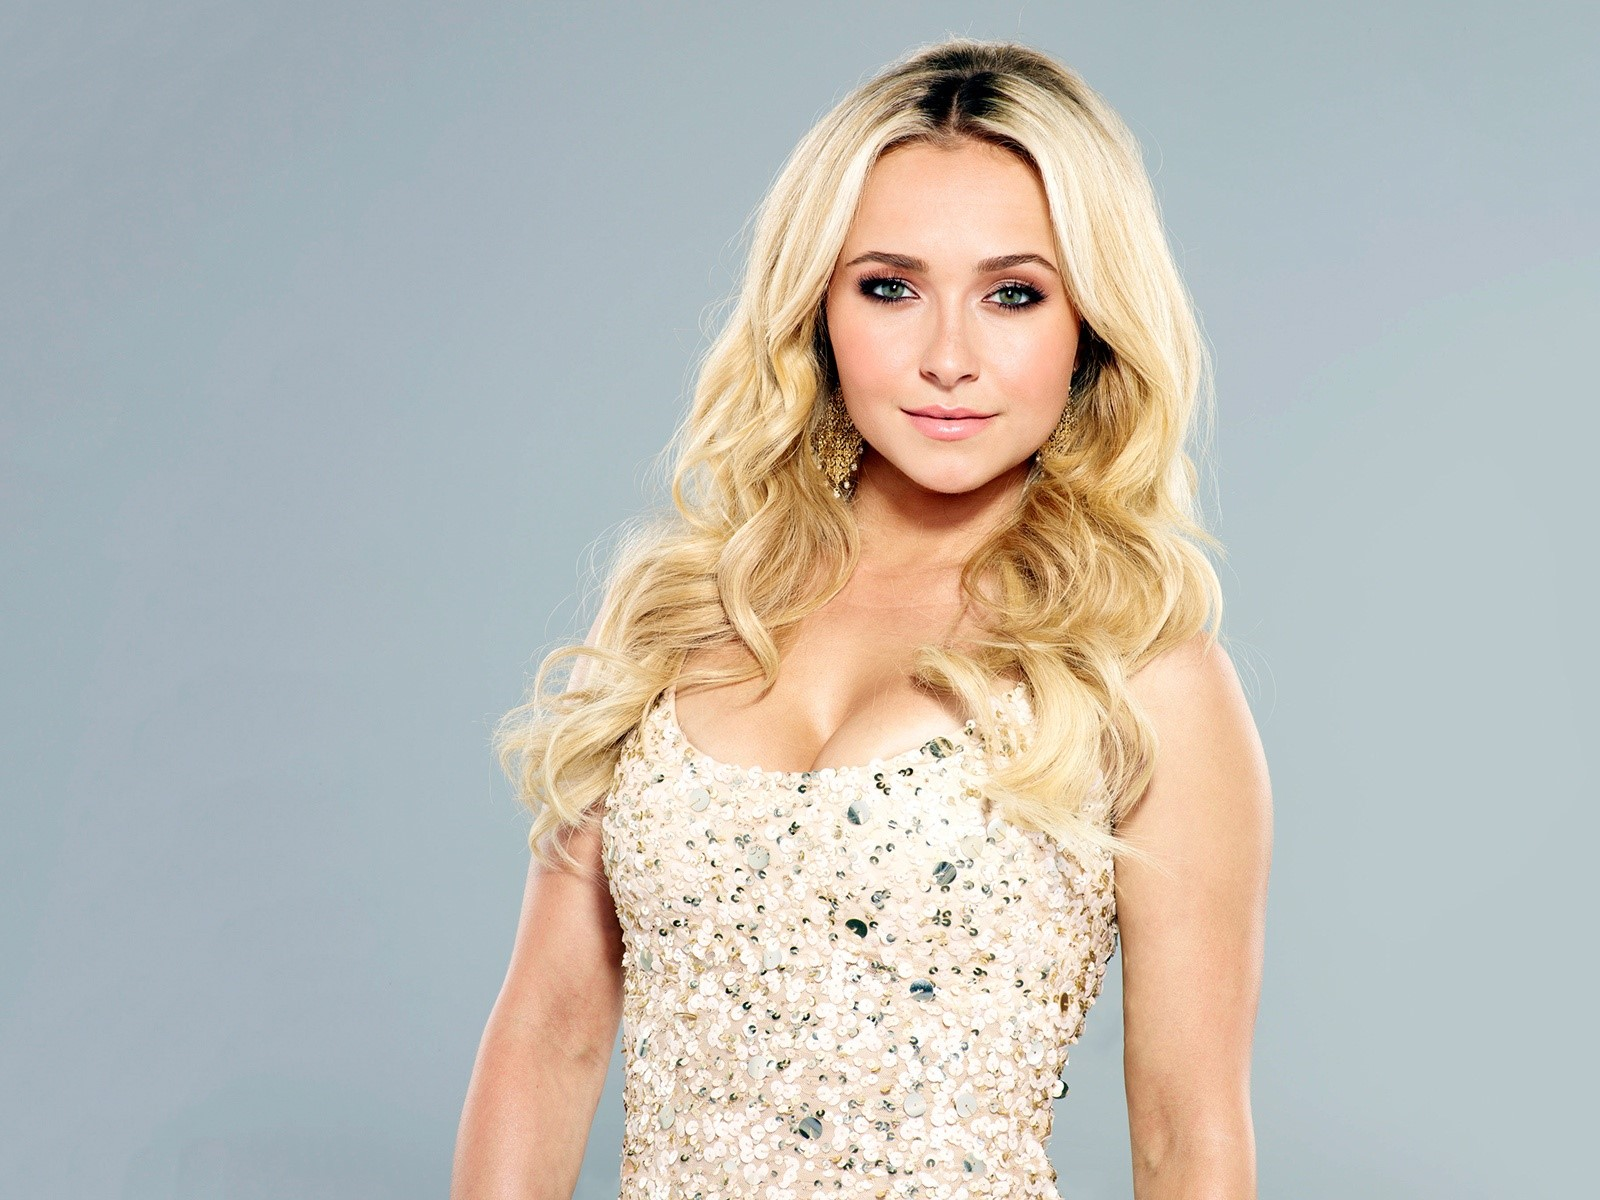 Wallpaper Hayden Panettiere